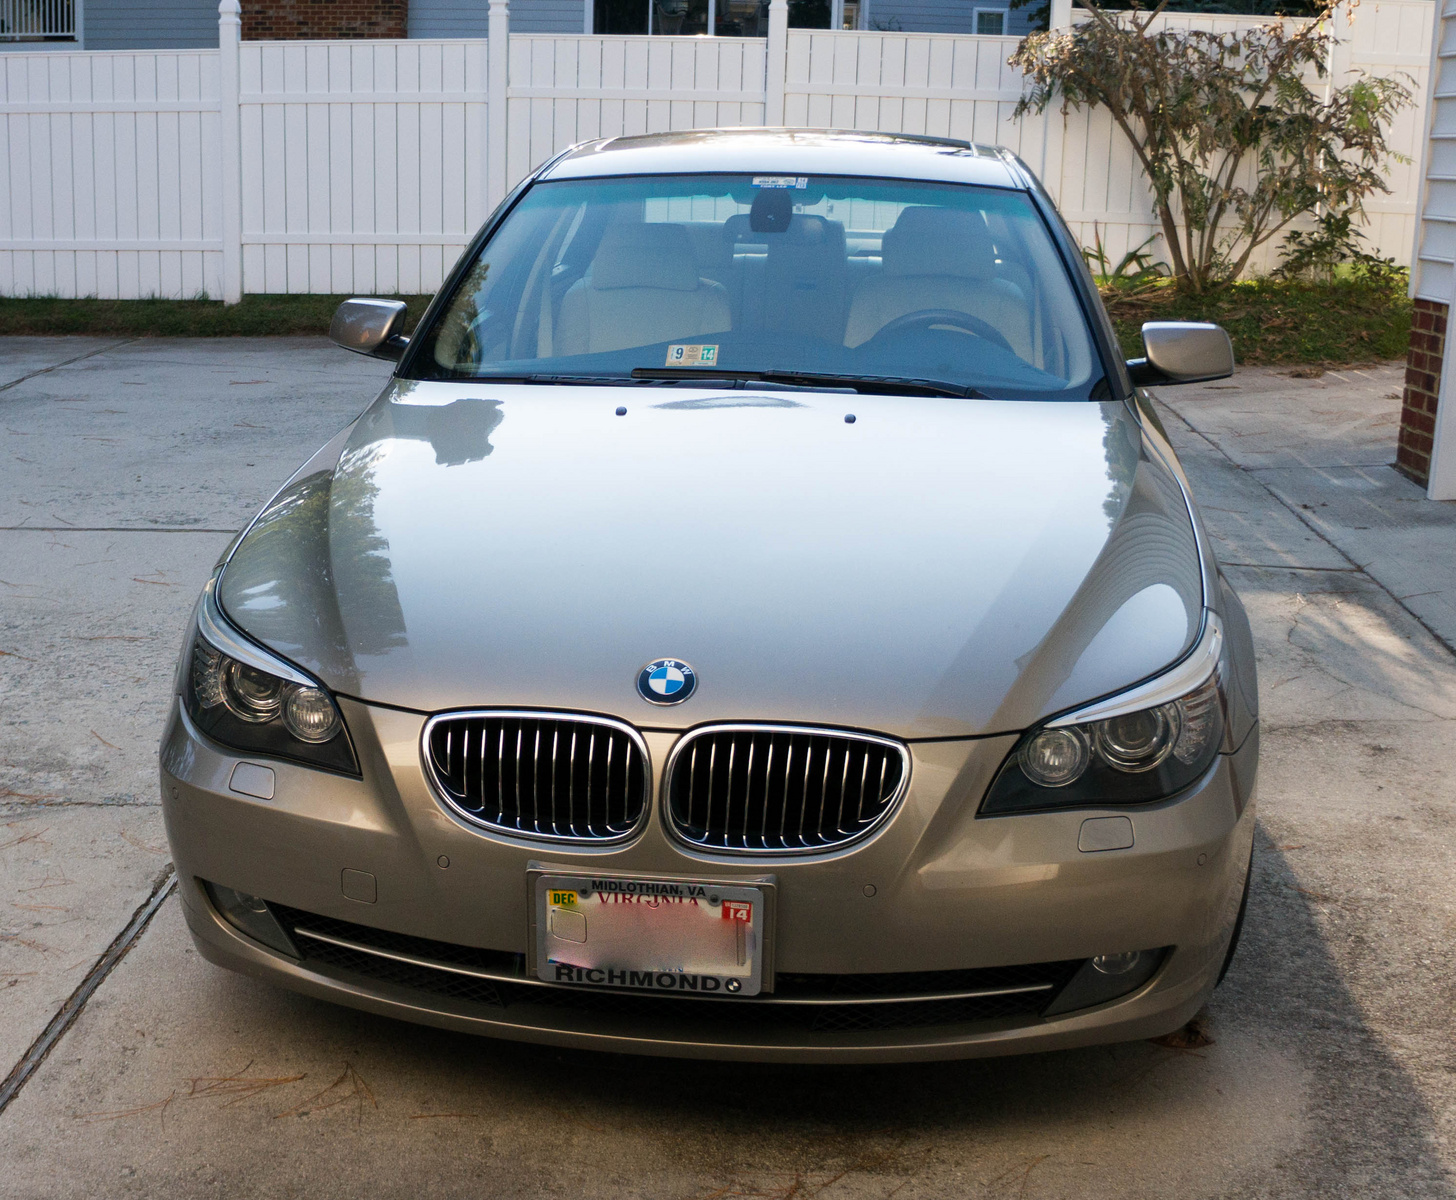 BMW 5 series 528i 2008 photo - 9